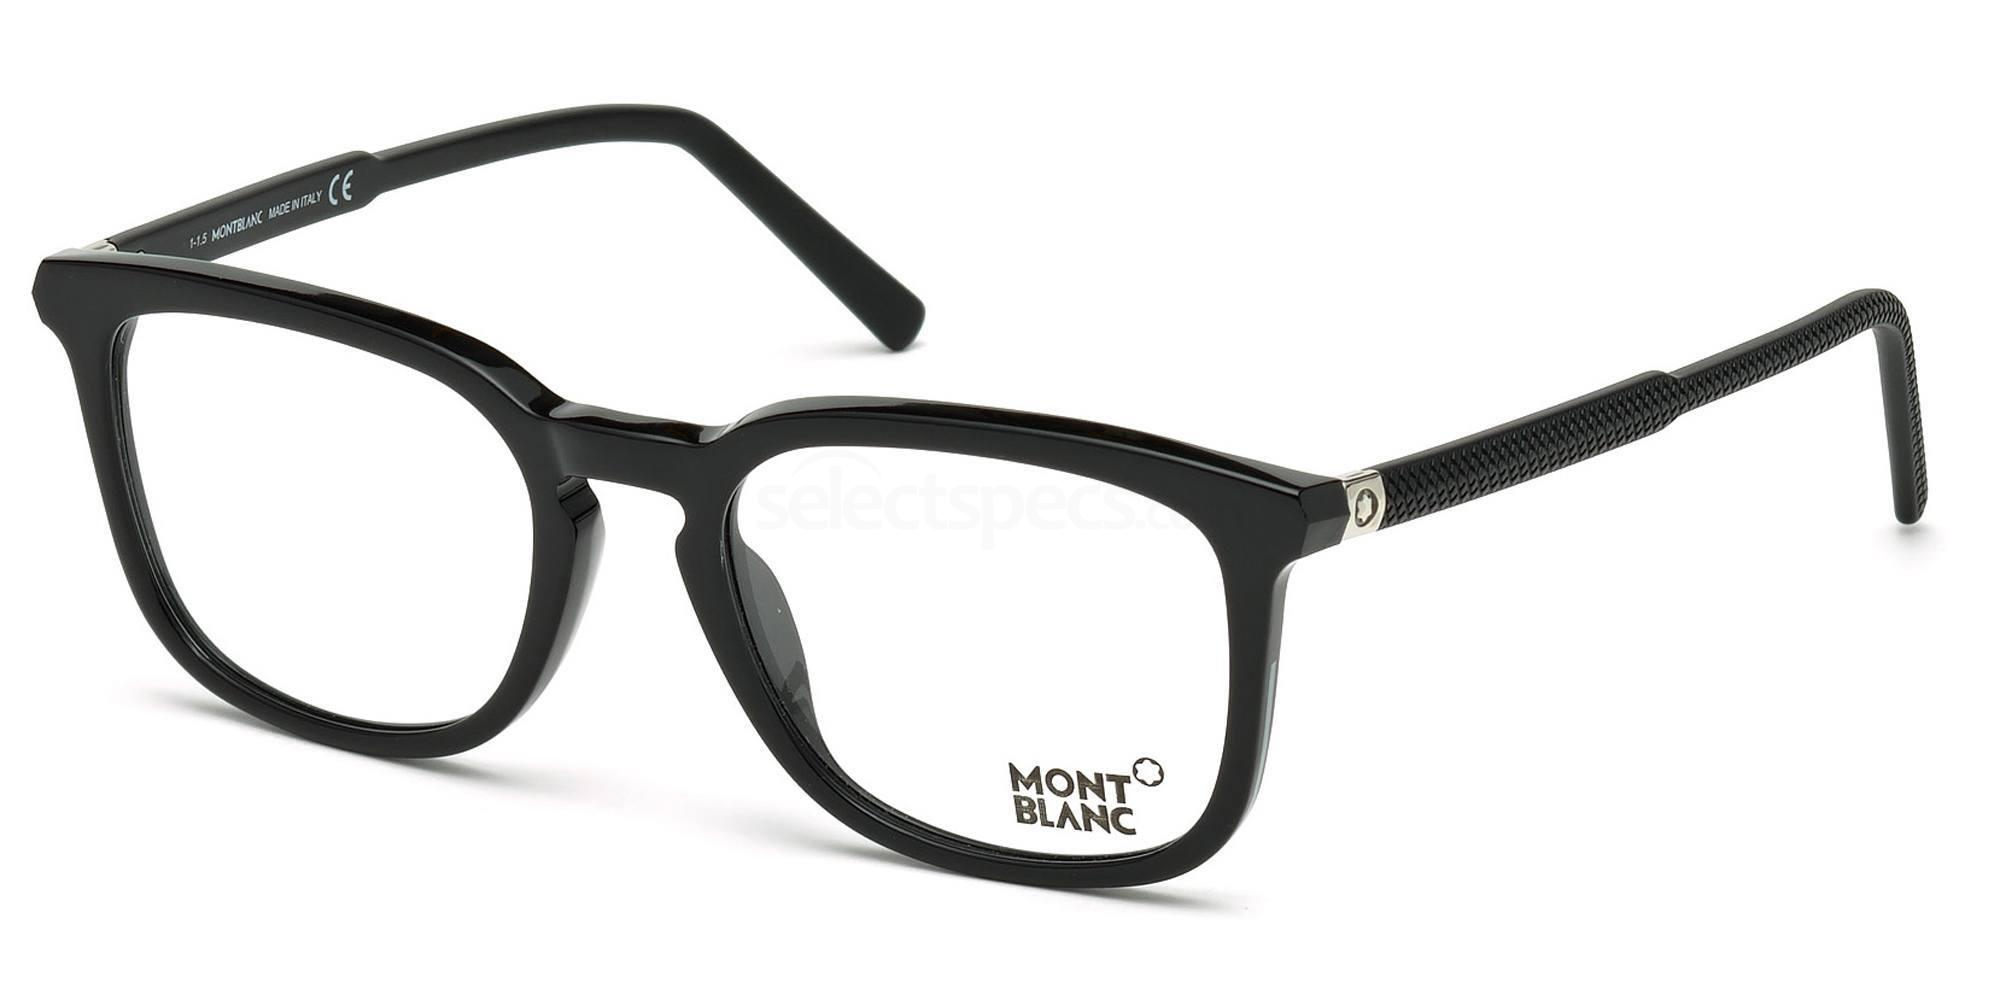 005 MB0609 Glasses, Mont Blanc